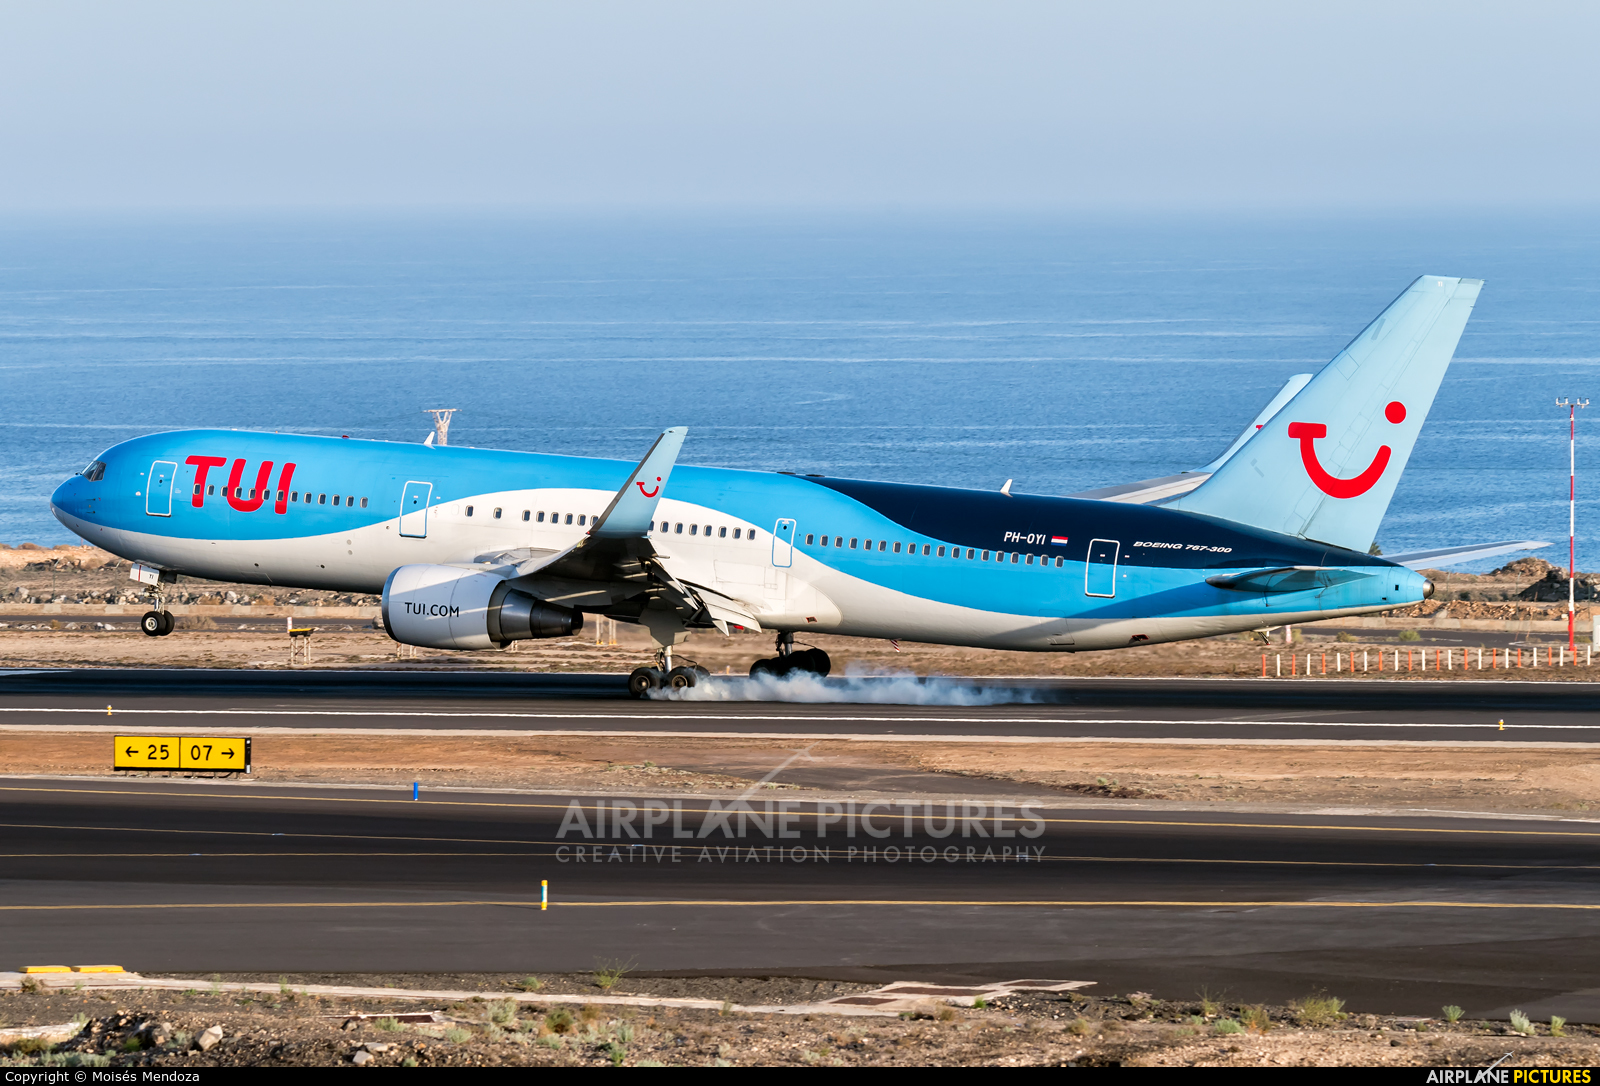 TUI Airlines Netherlands PH-OYI aircraft at Tenerife Sur - Reina Sofia